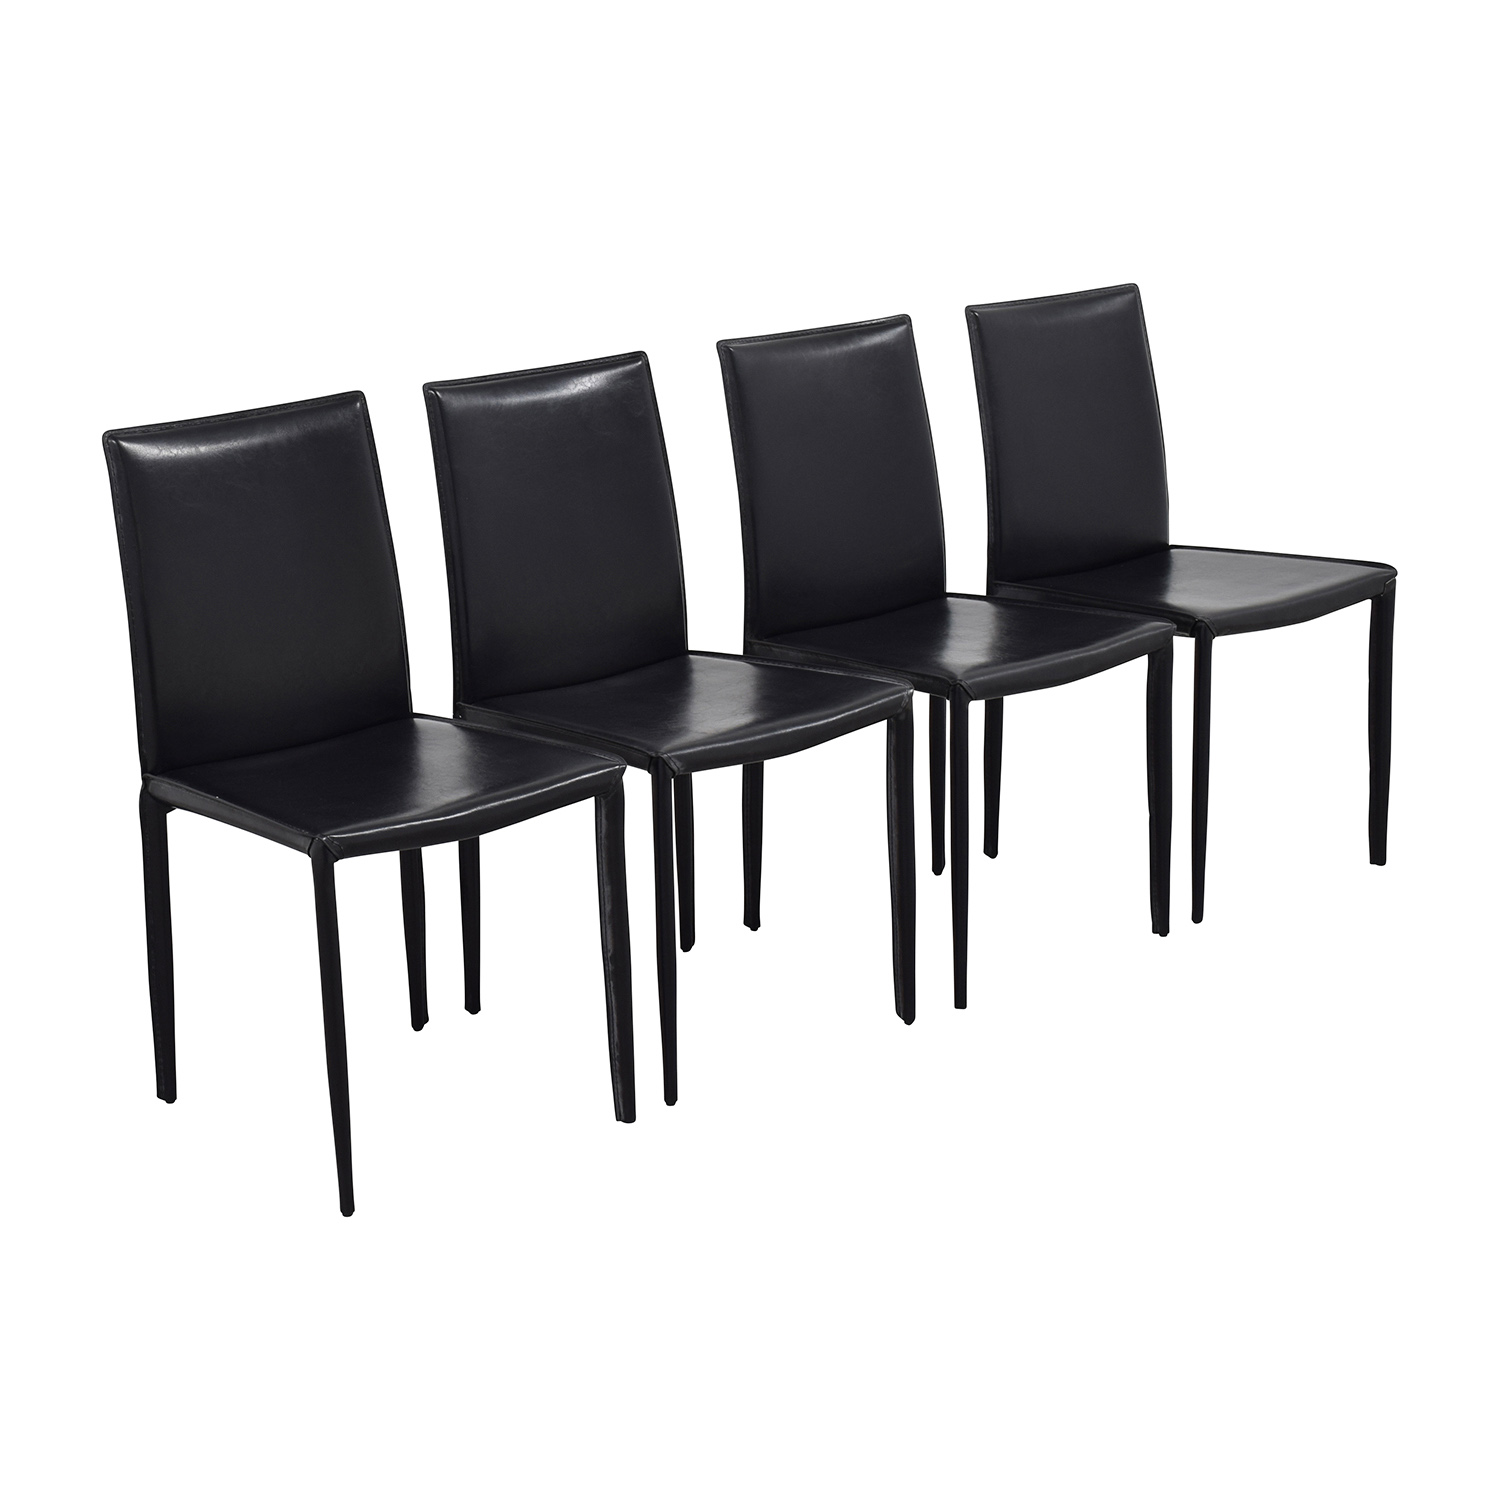 InMod InMod Mia Black Leather Chair Dining Chairs